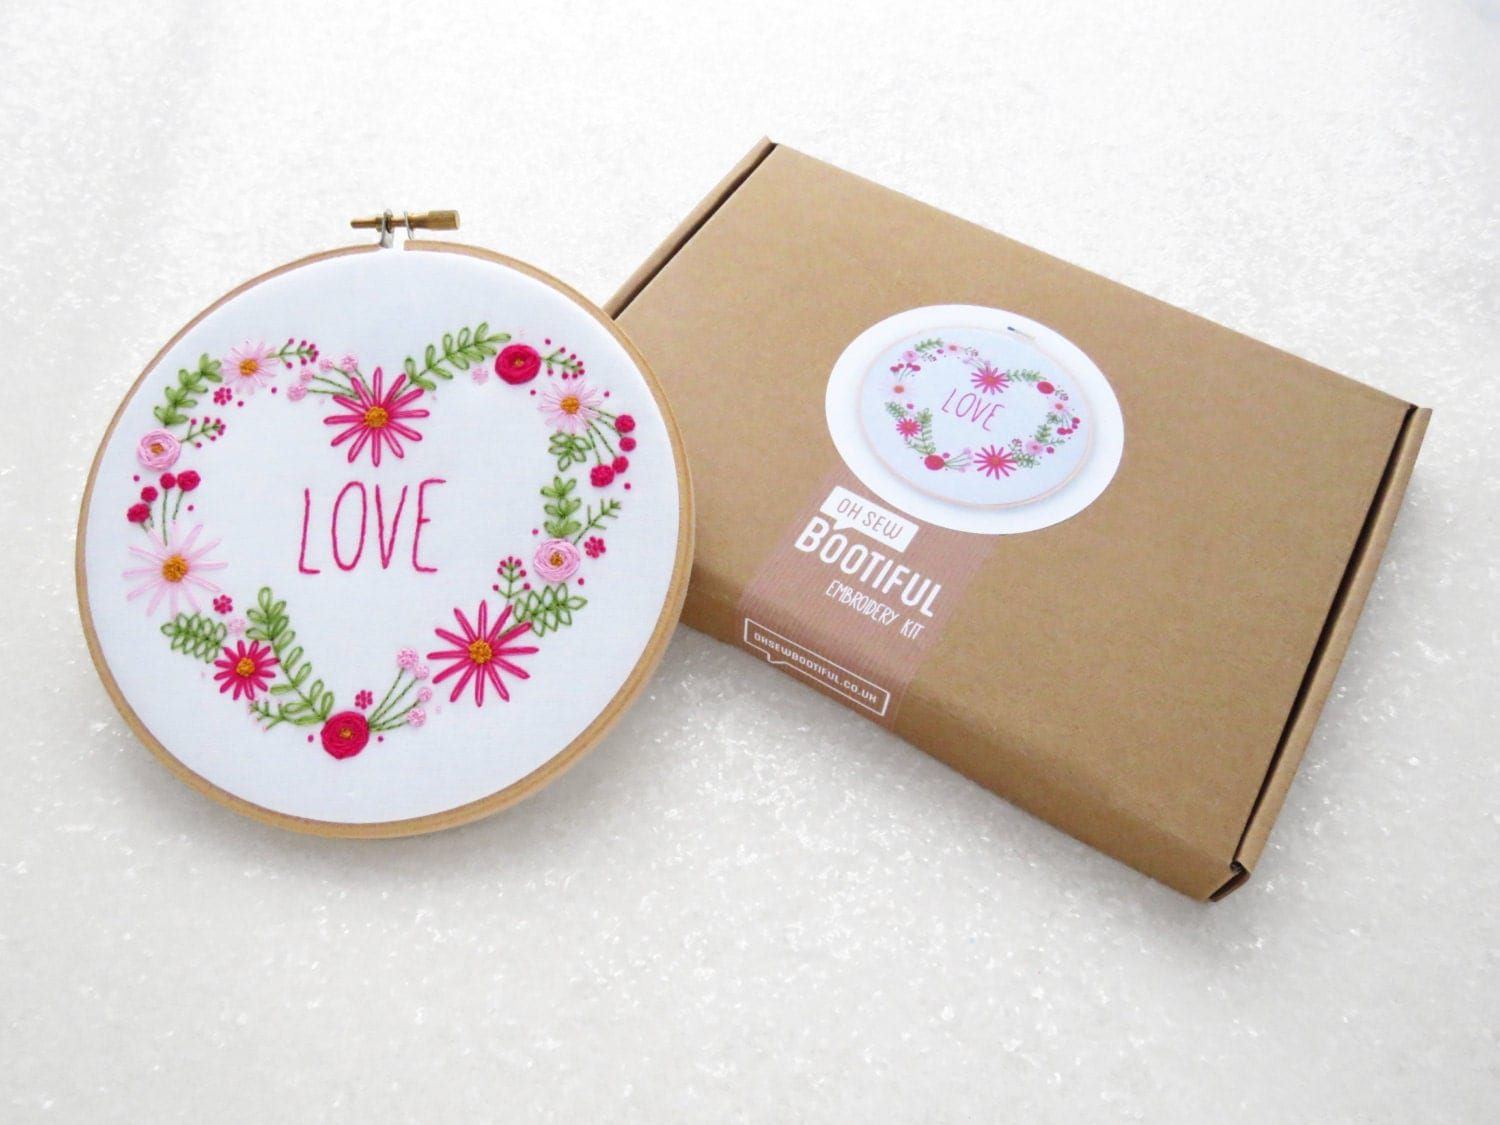 Embroidery kit flower hand set diy gift for her